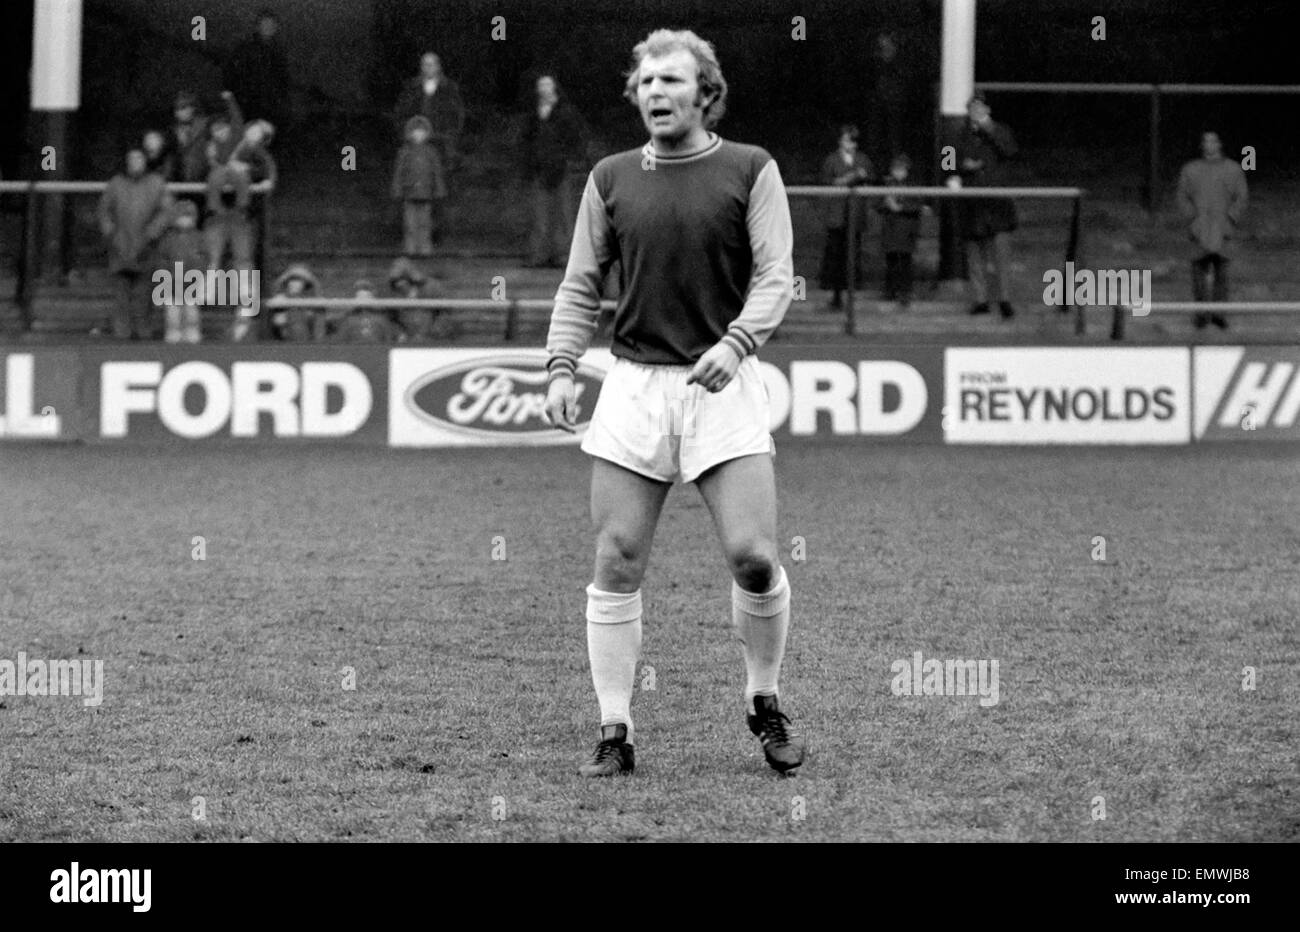 West Ham Footballer: Bobby Moore. March 1974 S74-1531-005 - Stock Image